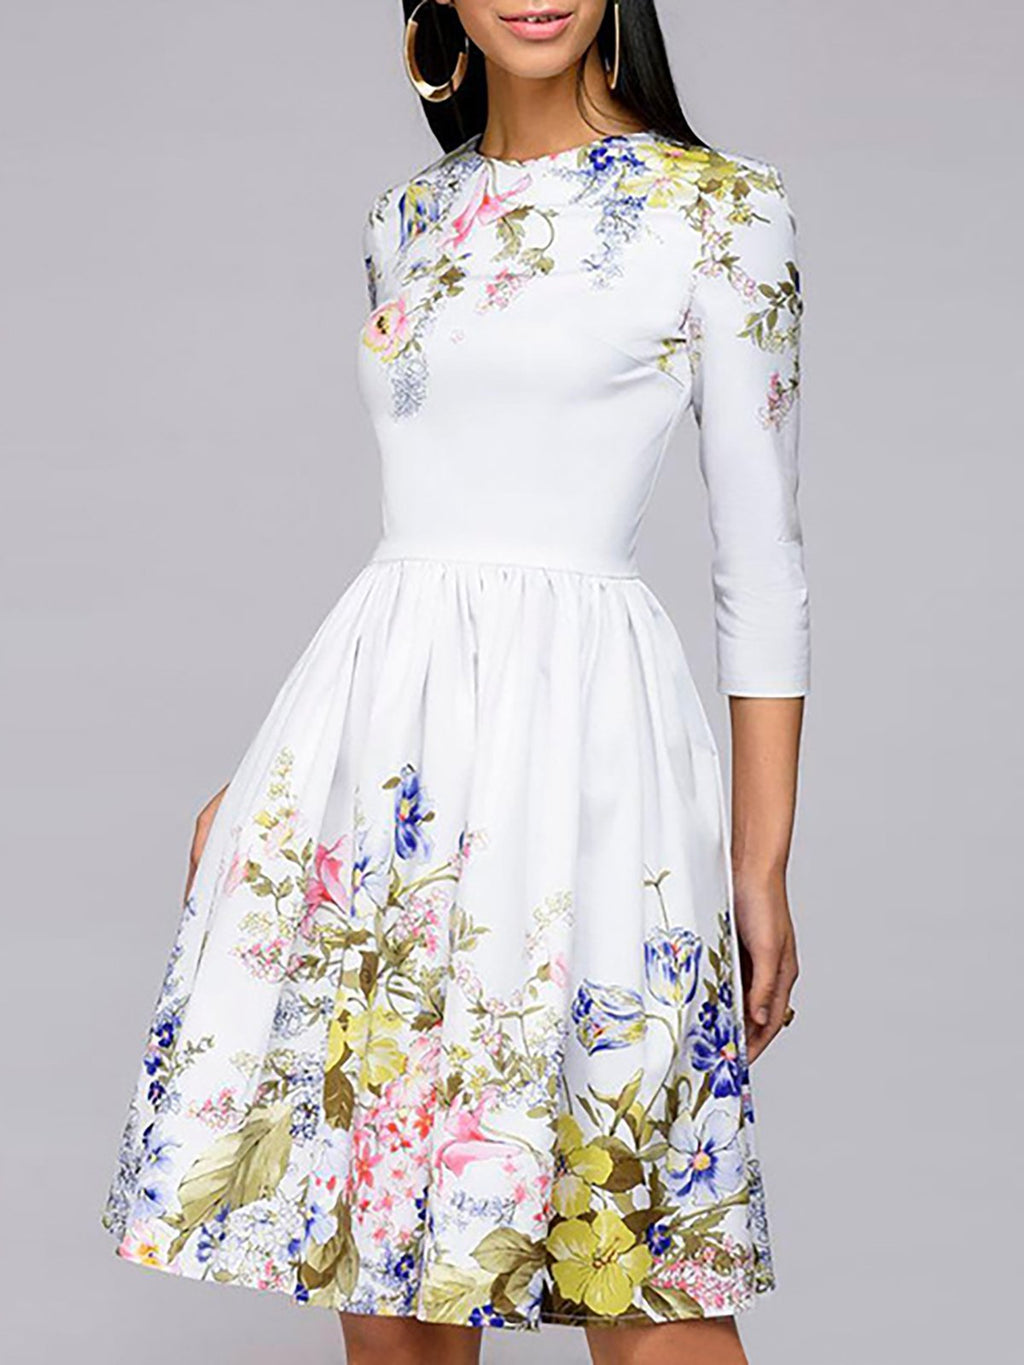 Prom Dresses Floral 3/4 Sleeve Holiday Elegant Midi Dress